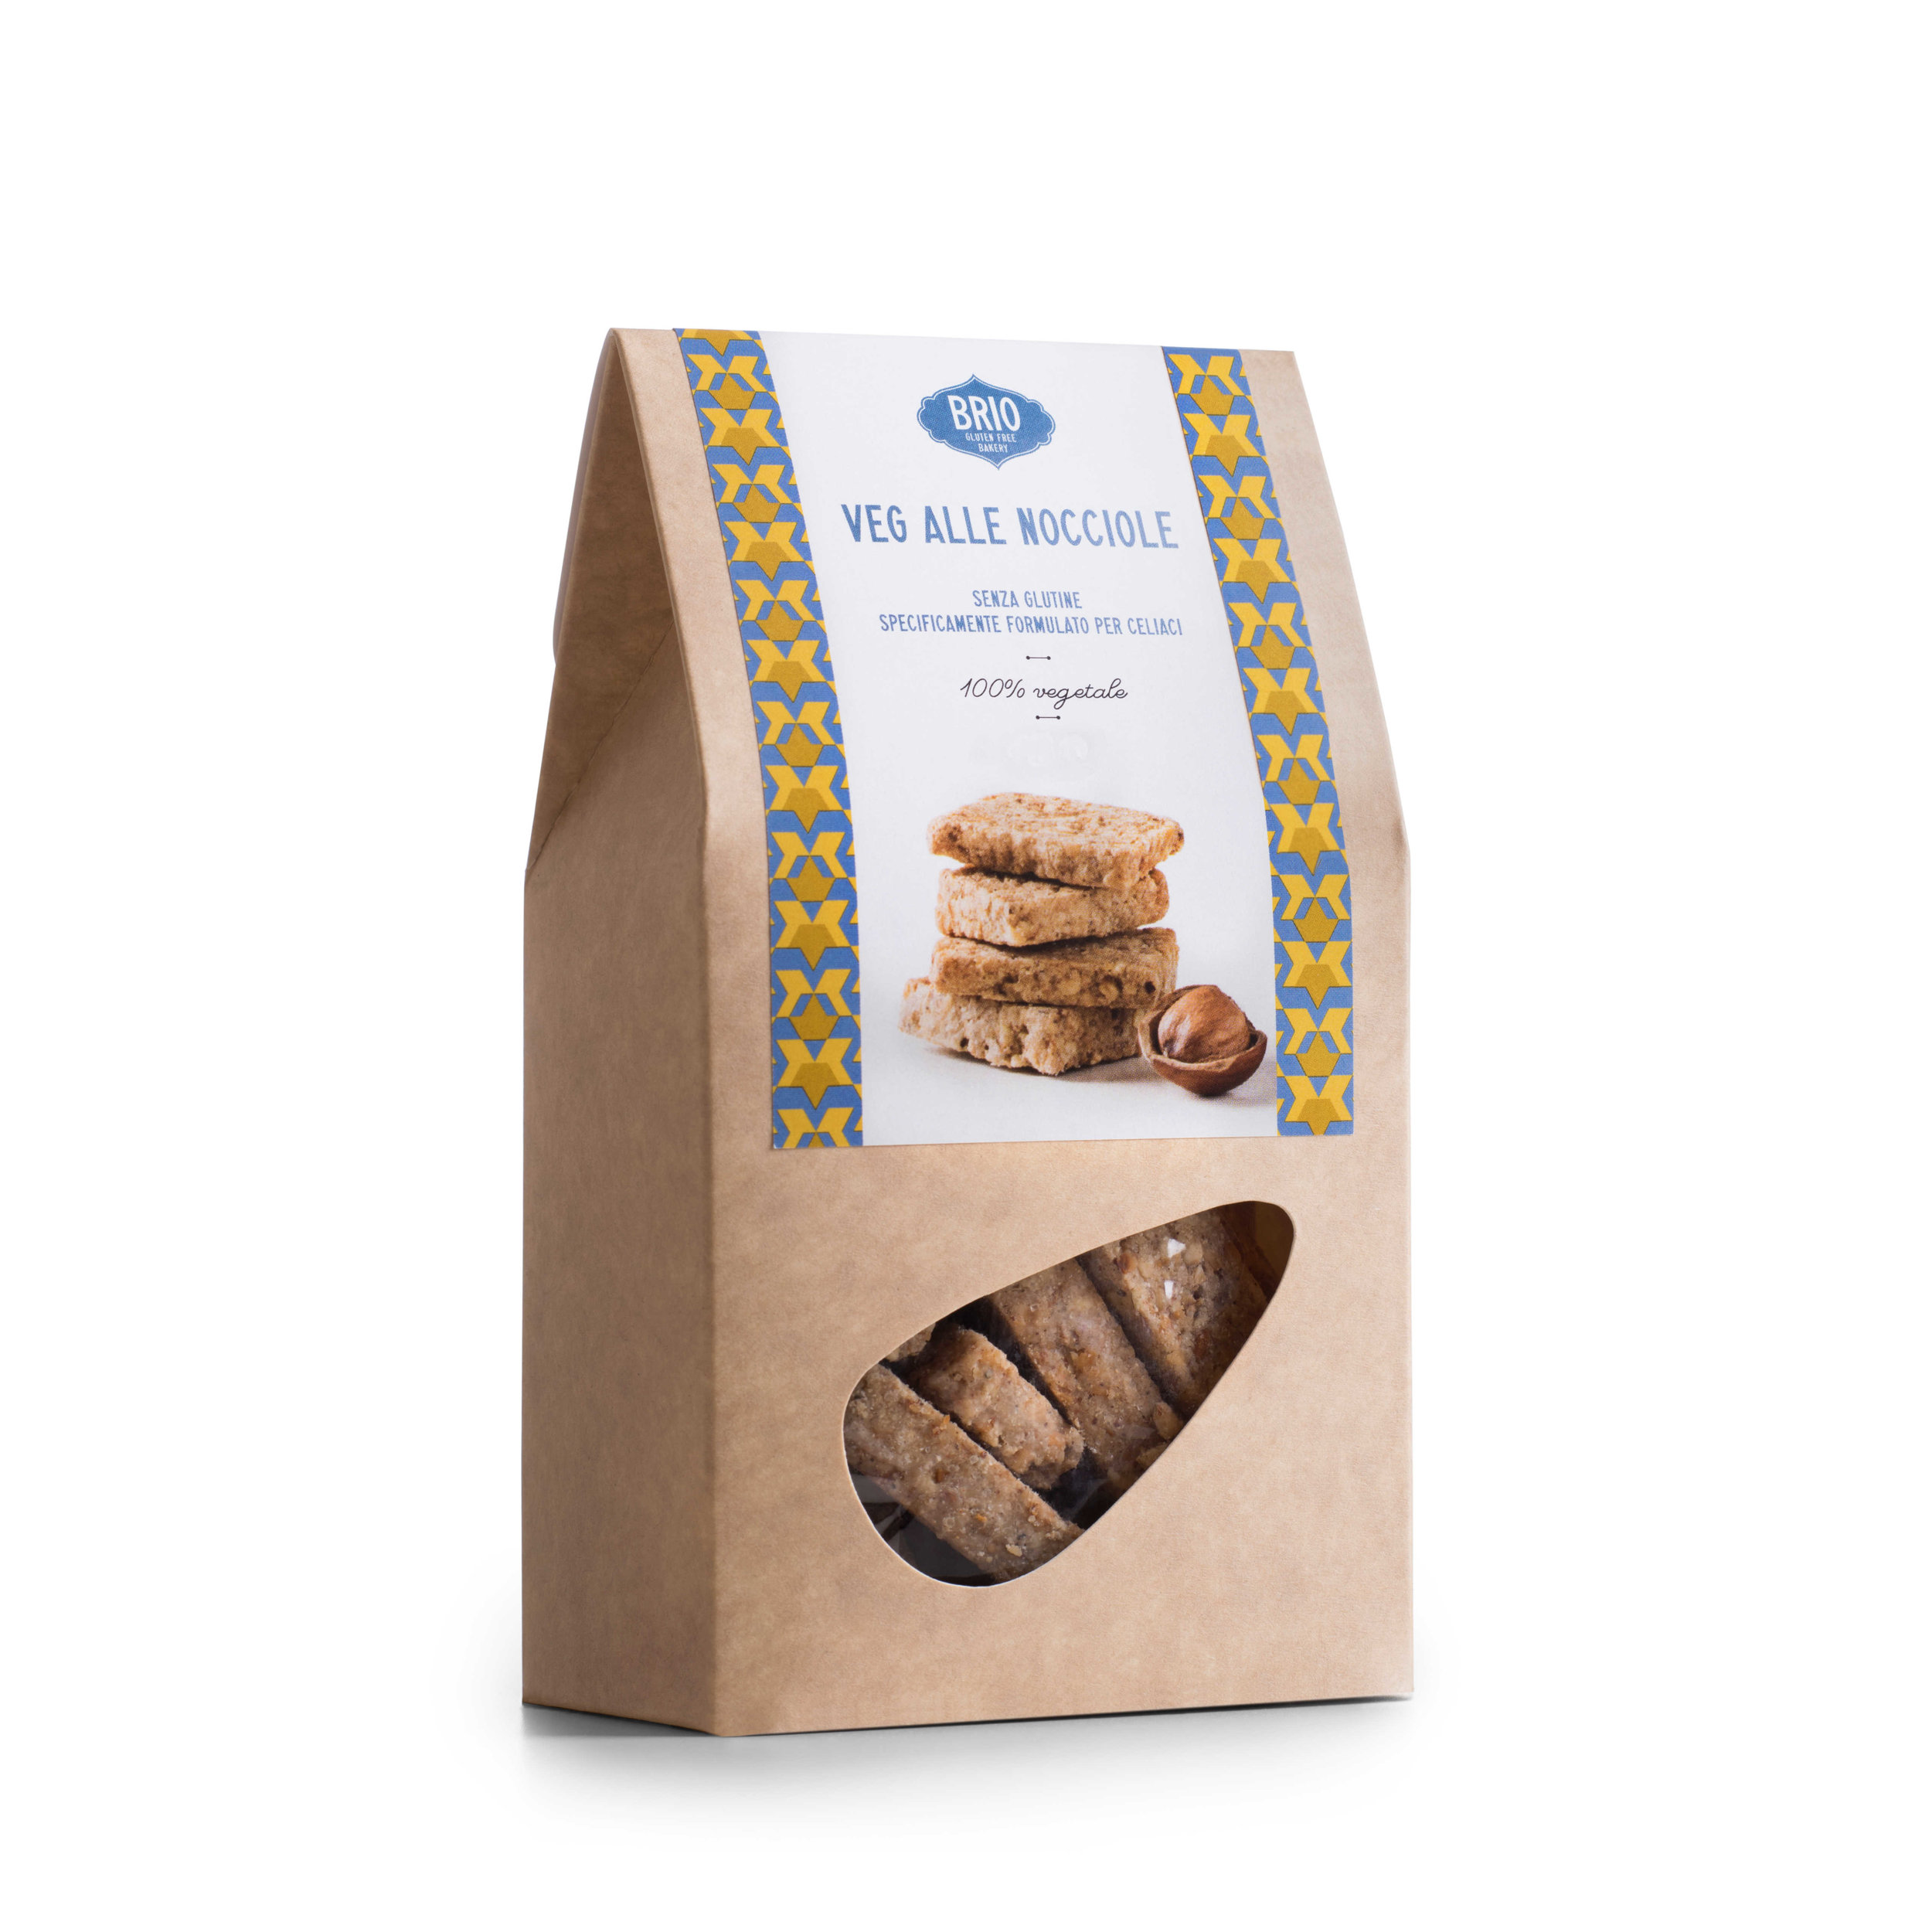 Vegan Hazelnut Biscuits